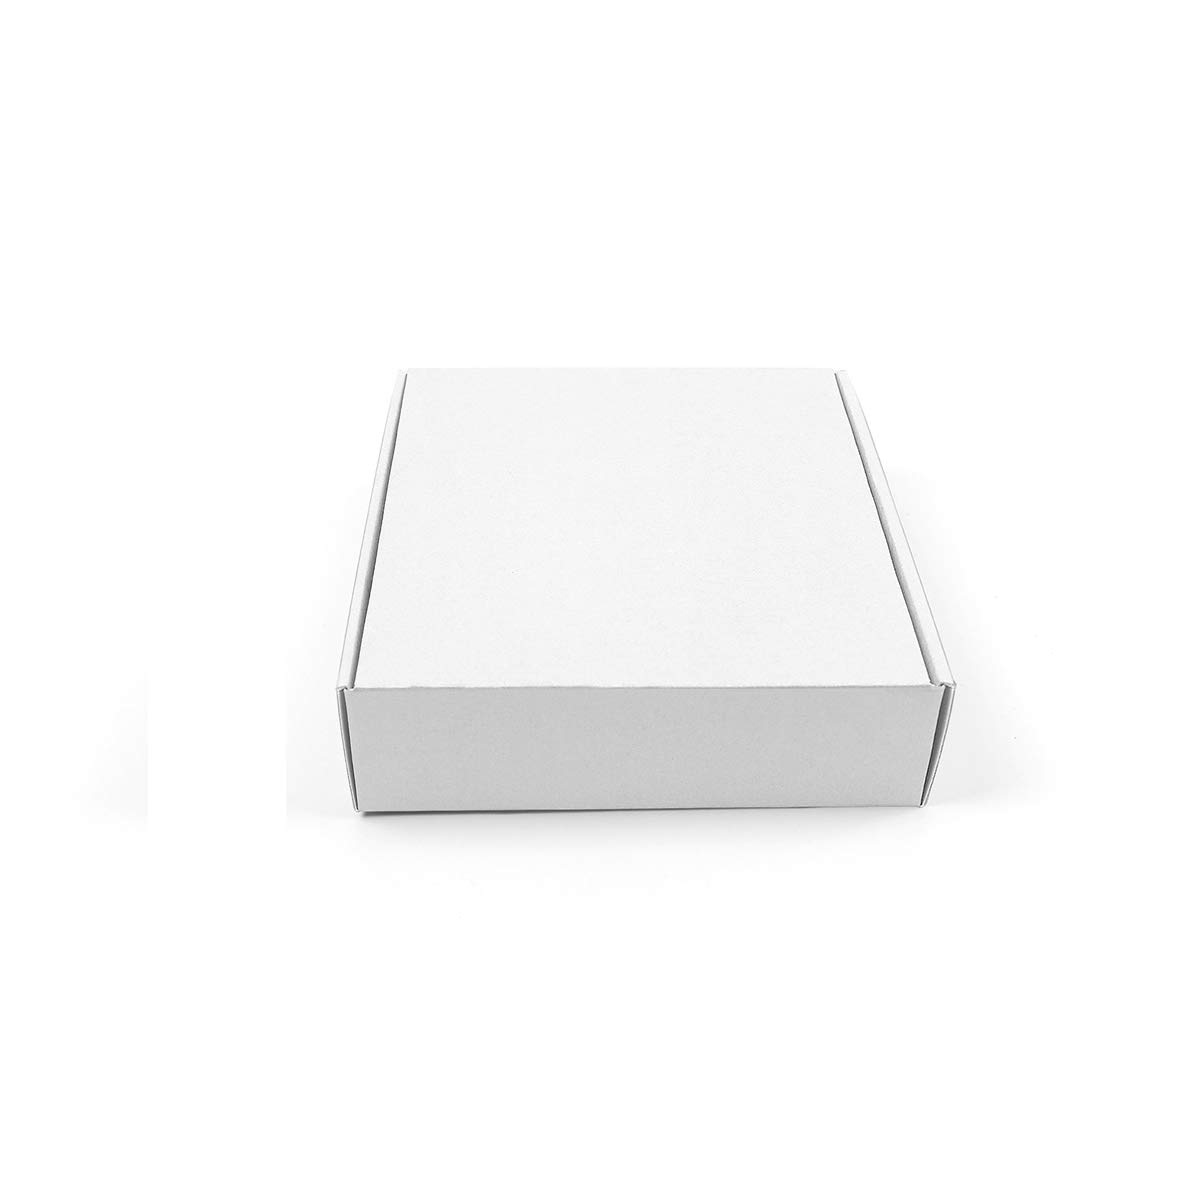 543a13624dd Sriyug Print Production White Packaging Flat Corrugated Boxes 10 x 7 x 3.5  inch 3 Ply Pack of 25 Carton Boxes for Gift Picture Mirror Books   Amazon.in  ...